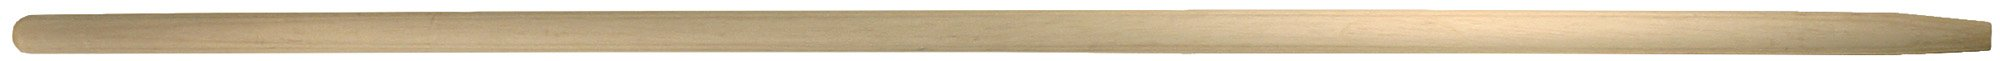 PFERD 89899 Tapered Wood Handle for Maintenance Brush, 1-1/8'' Diameter x 5' Length (Pack of 2)